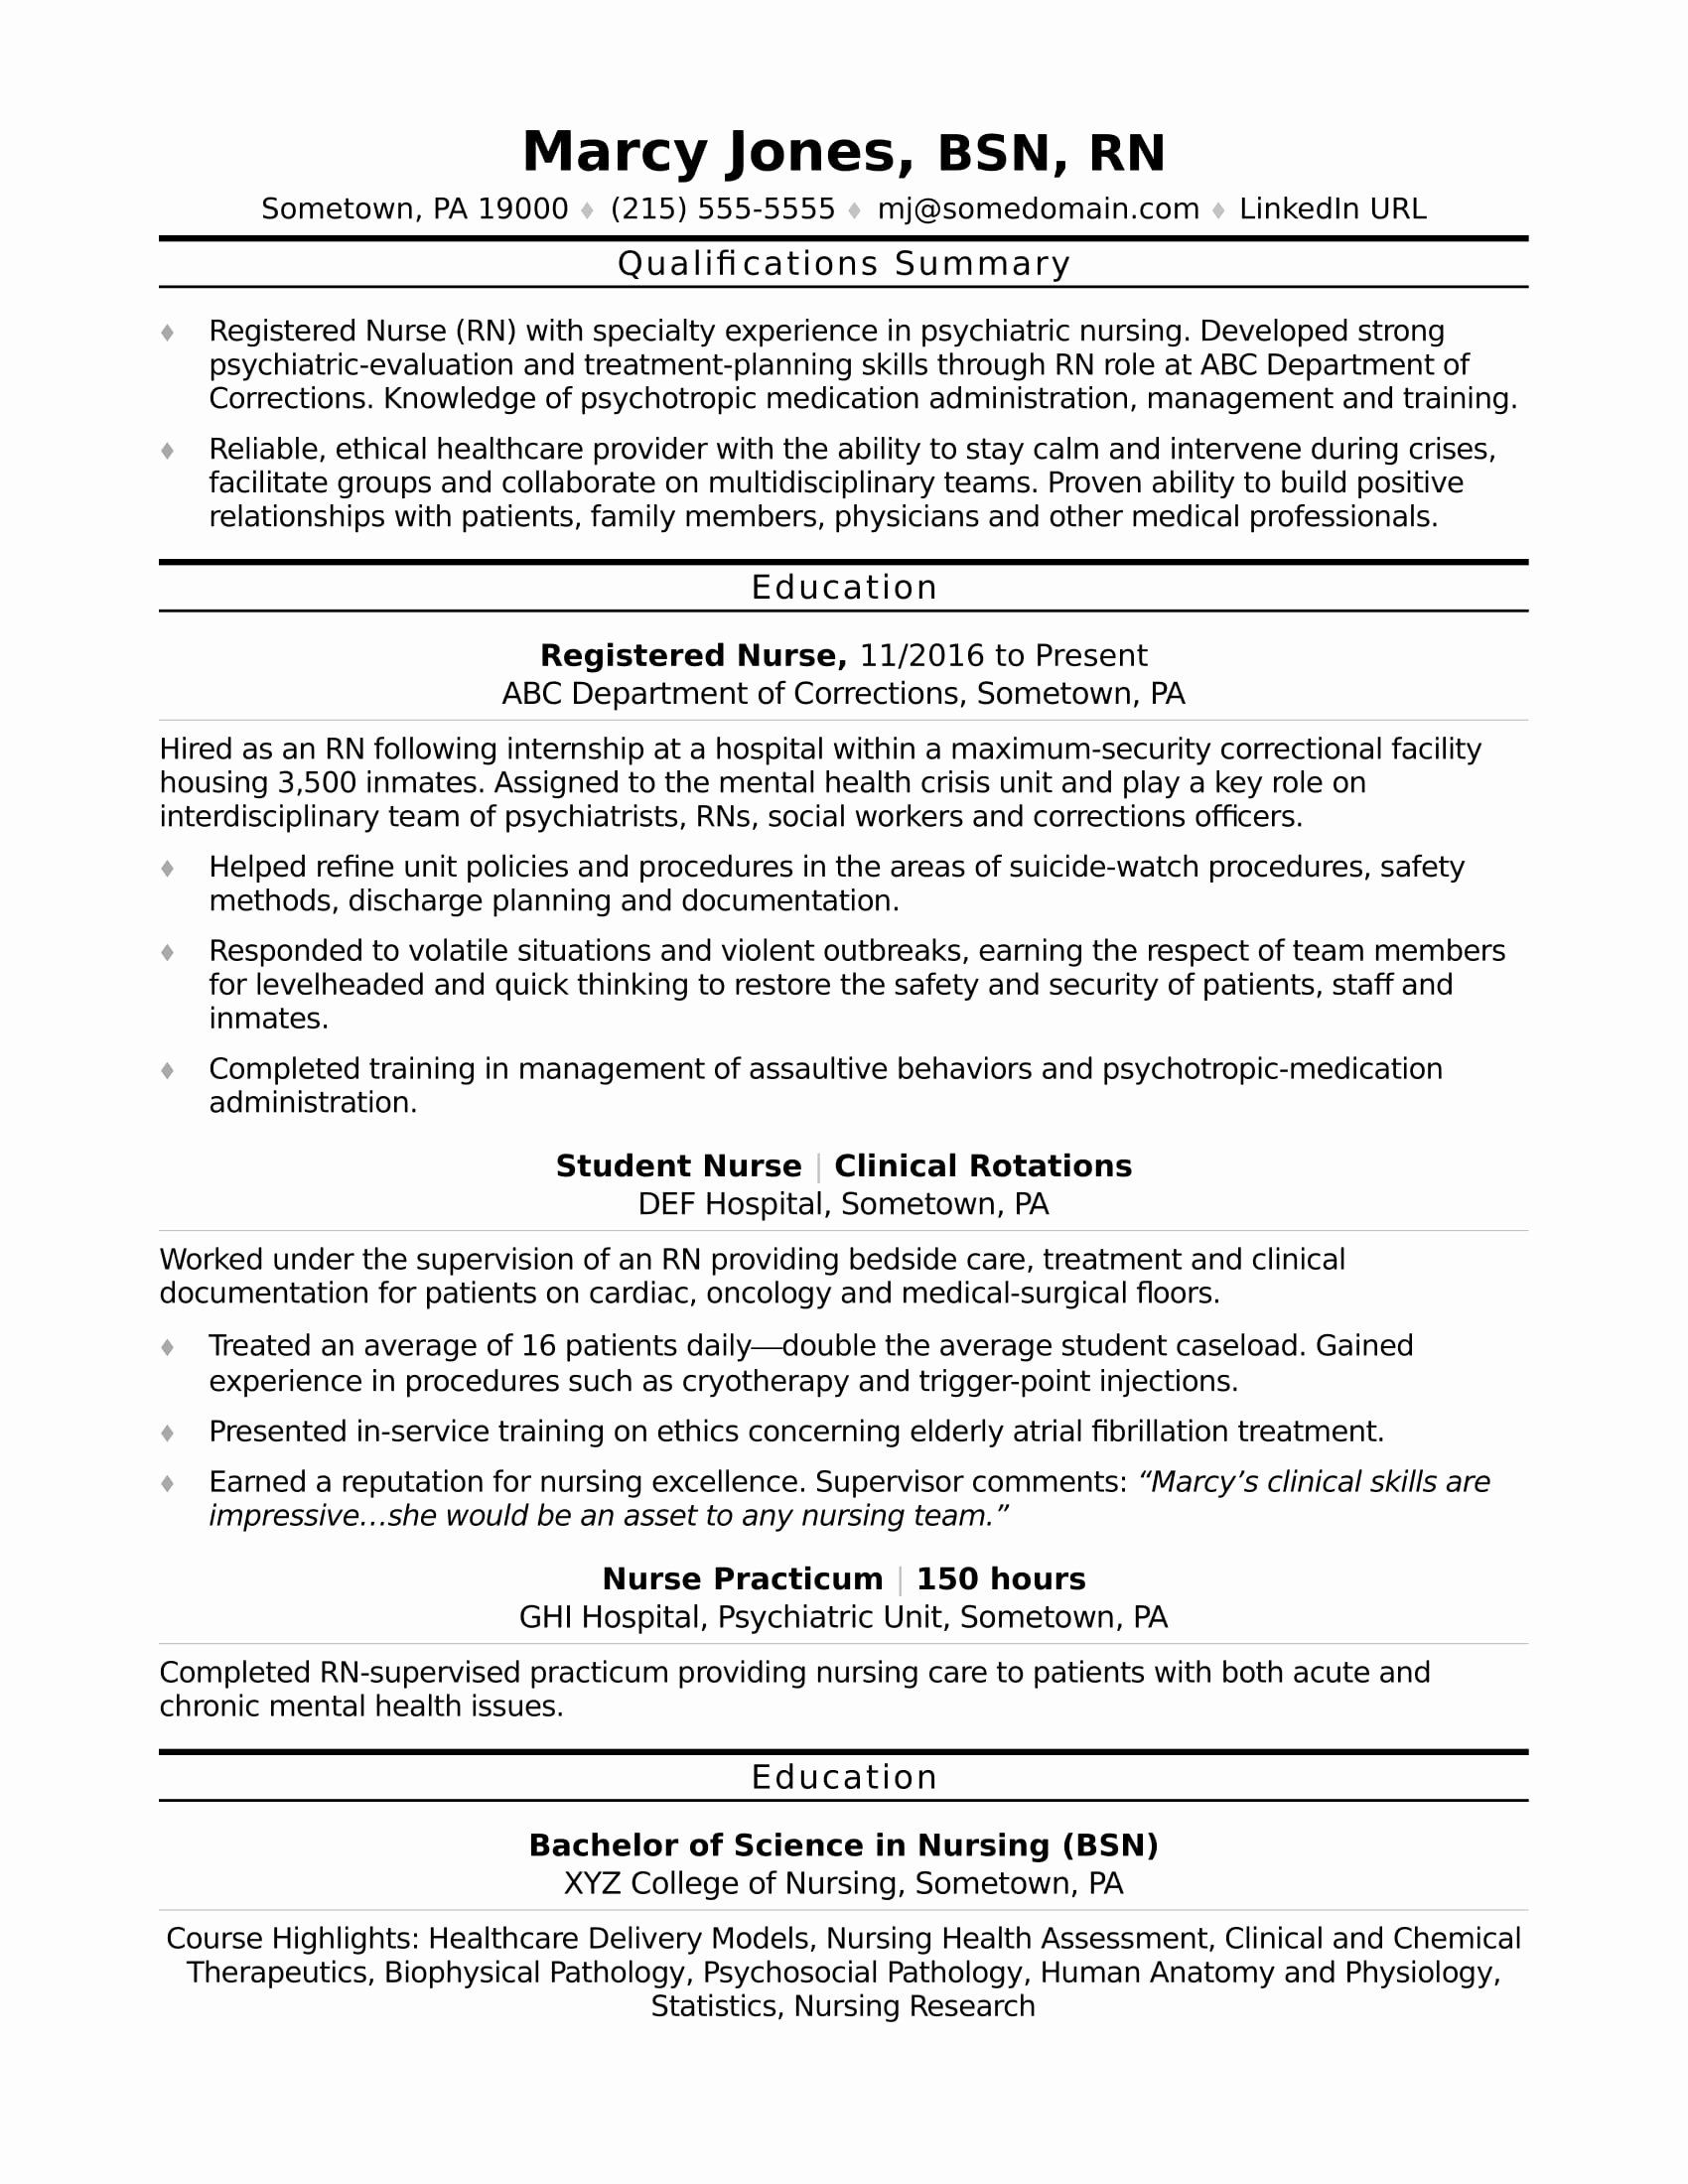 Nursing Student Resume Template Fresh Registered Nurse Rn Resume